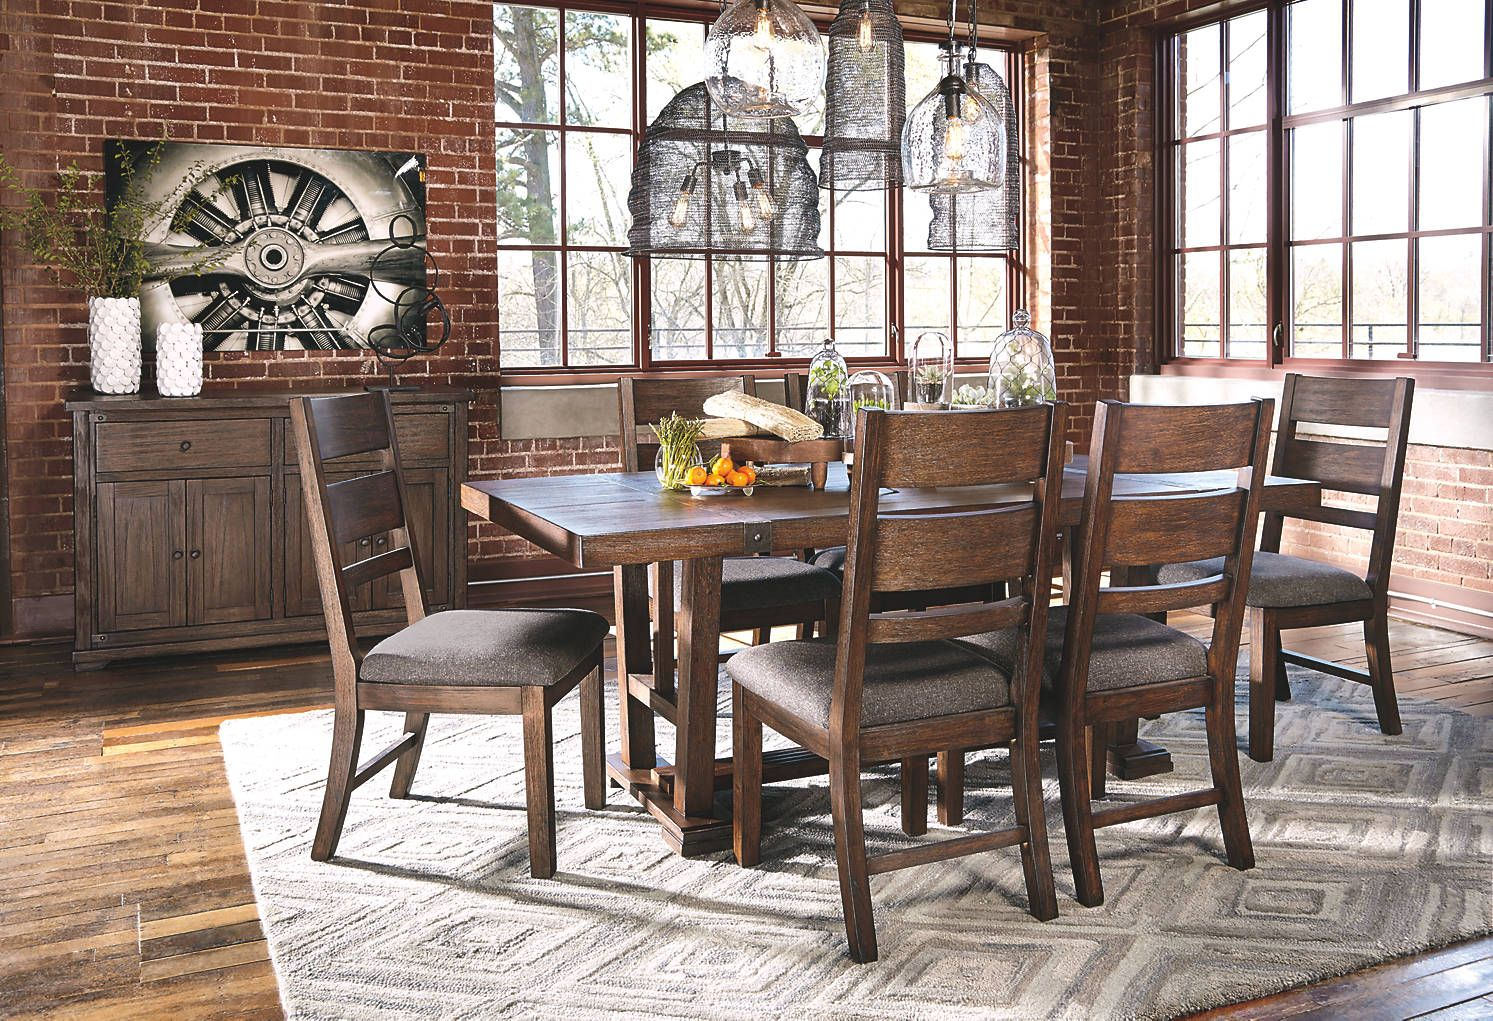 Ashleyfurniture D670 25 01 286 29 60 Dining Room Table Dining Chairs Contemporary Dining Furniture